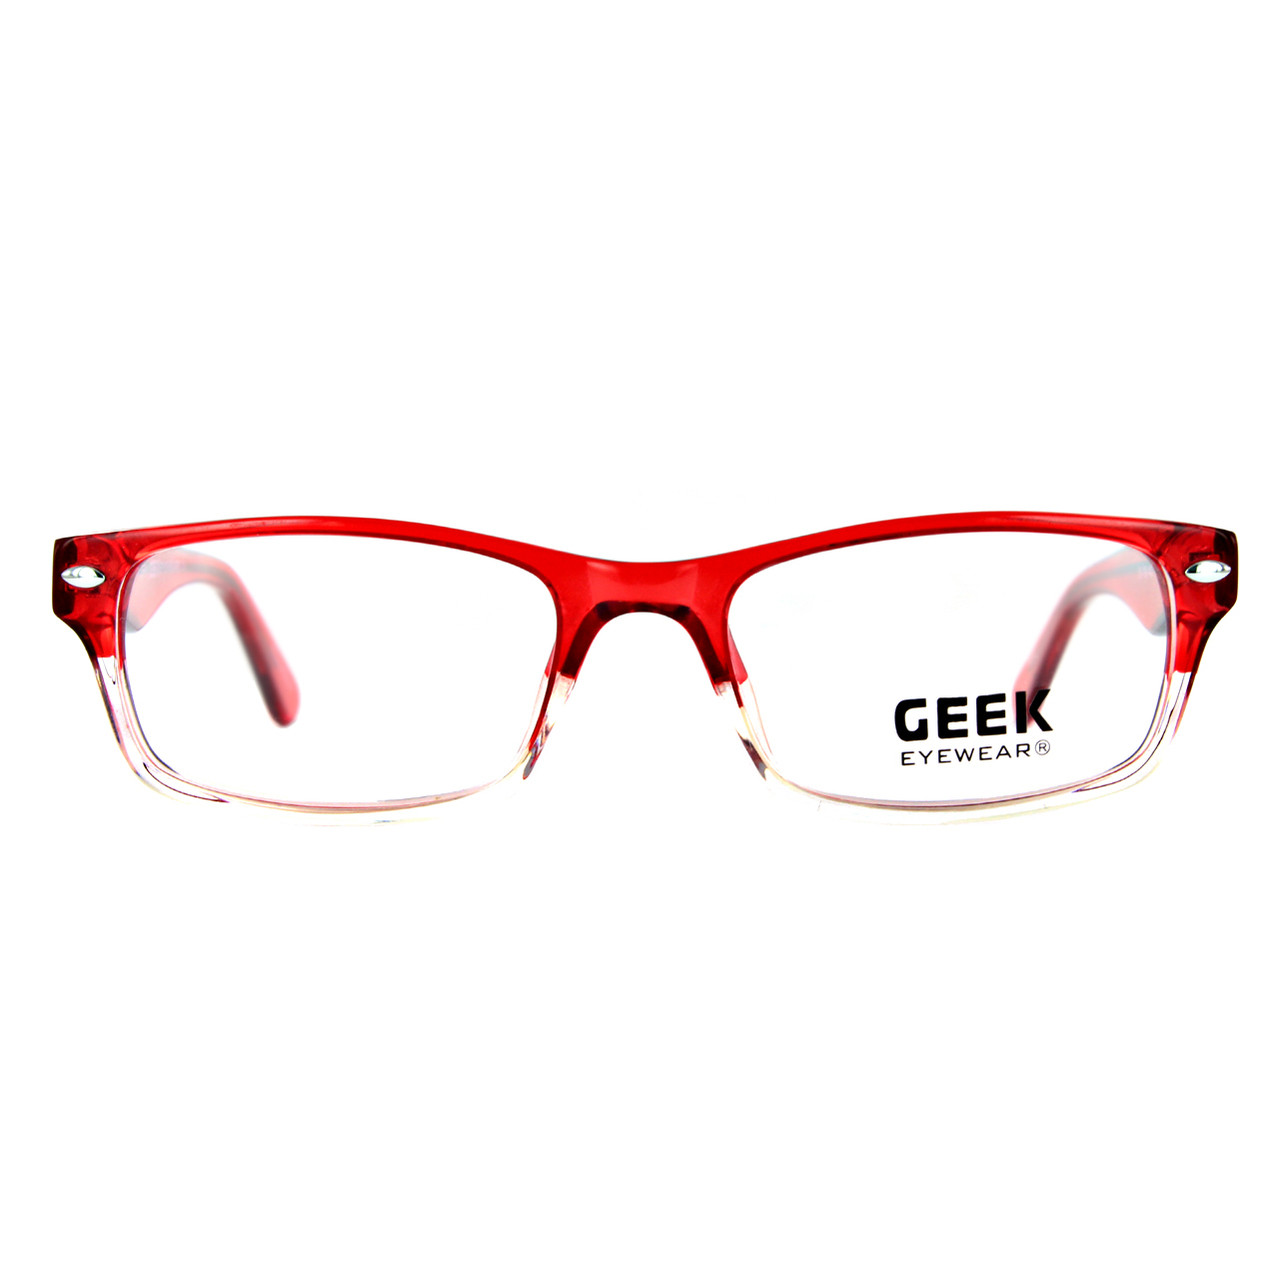 GEEK Eyewear style Intern Eyeglasses Cruise To Space Collection